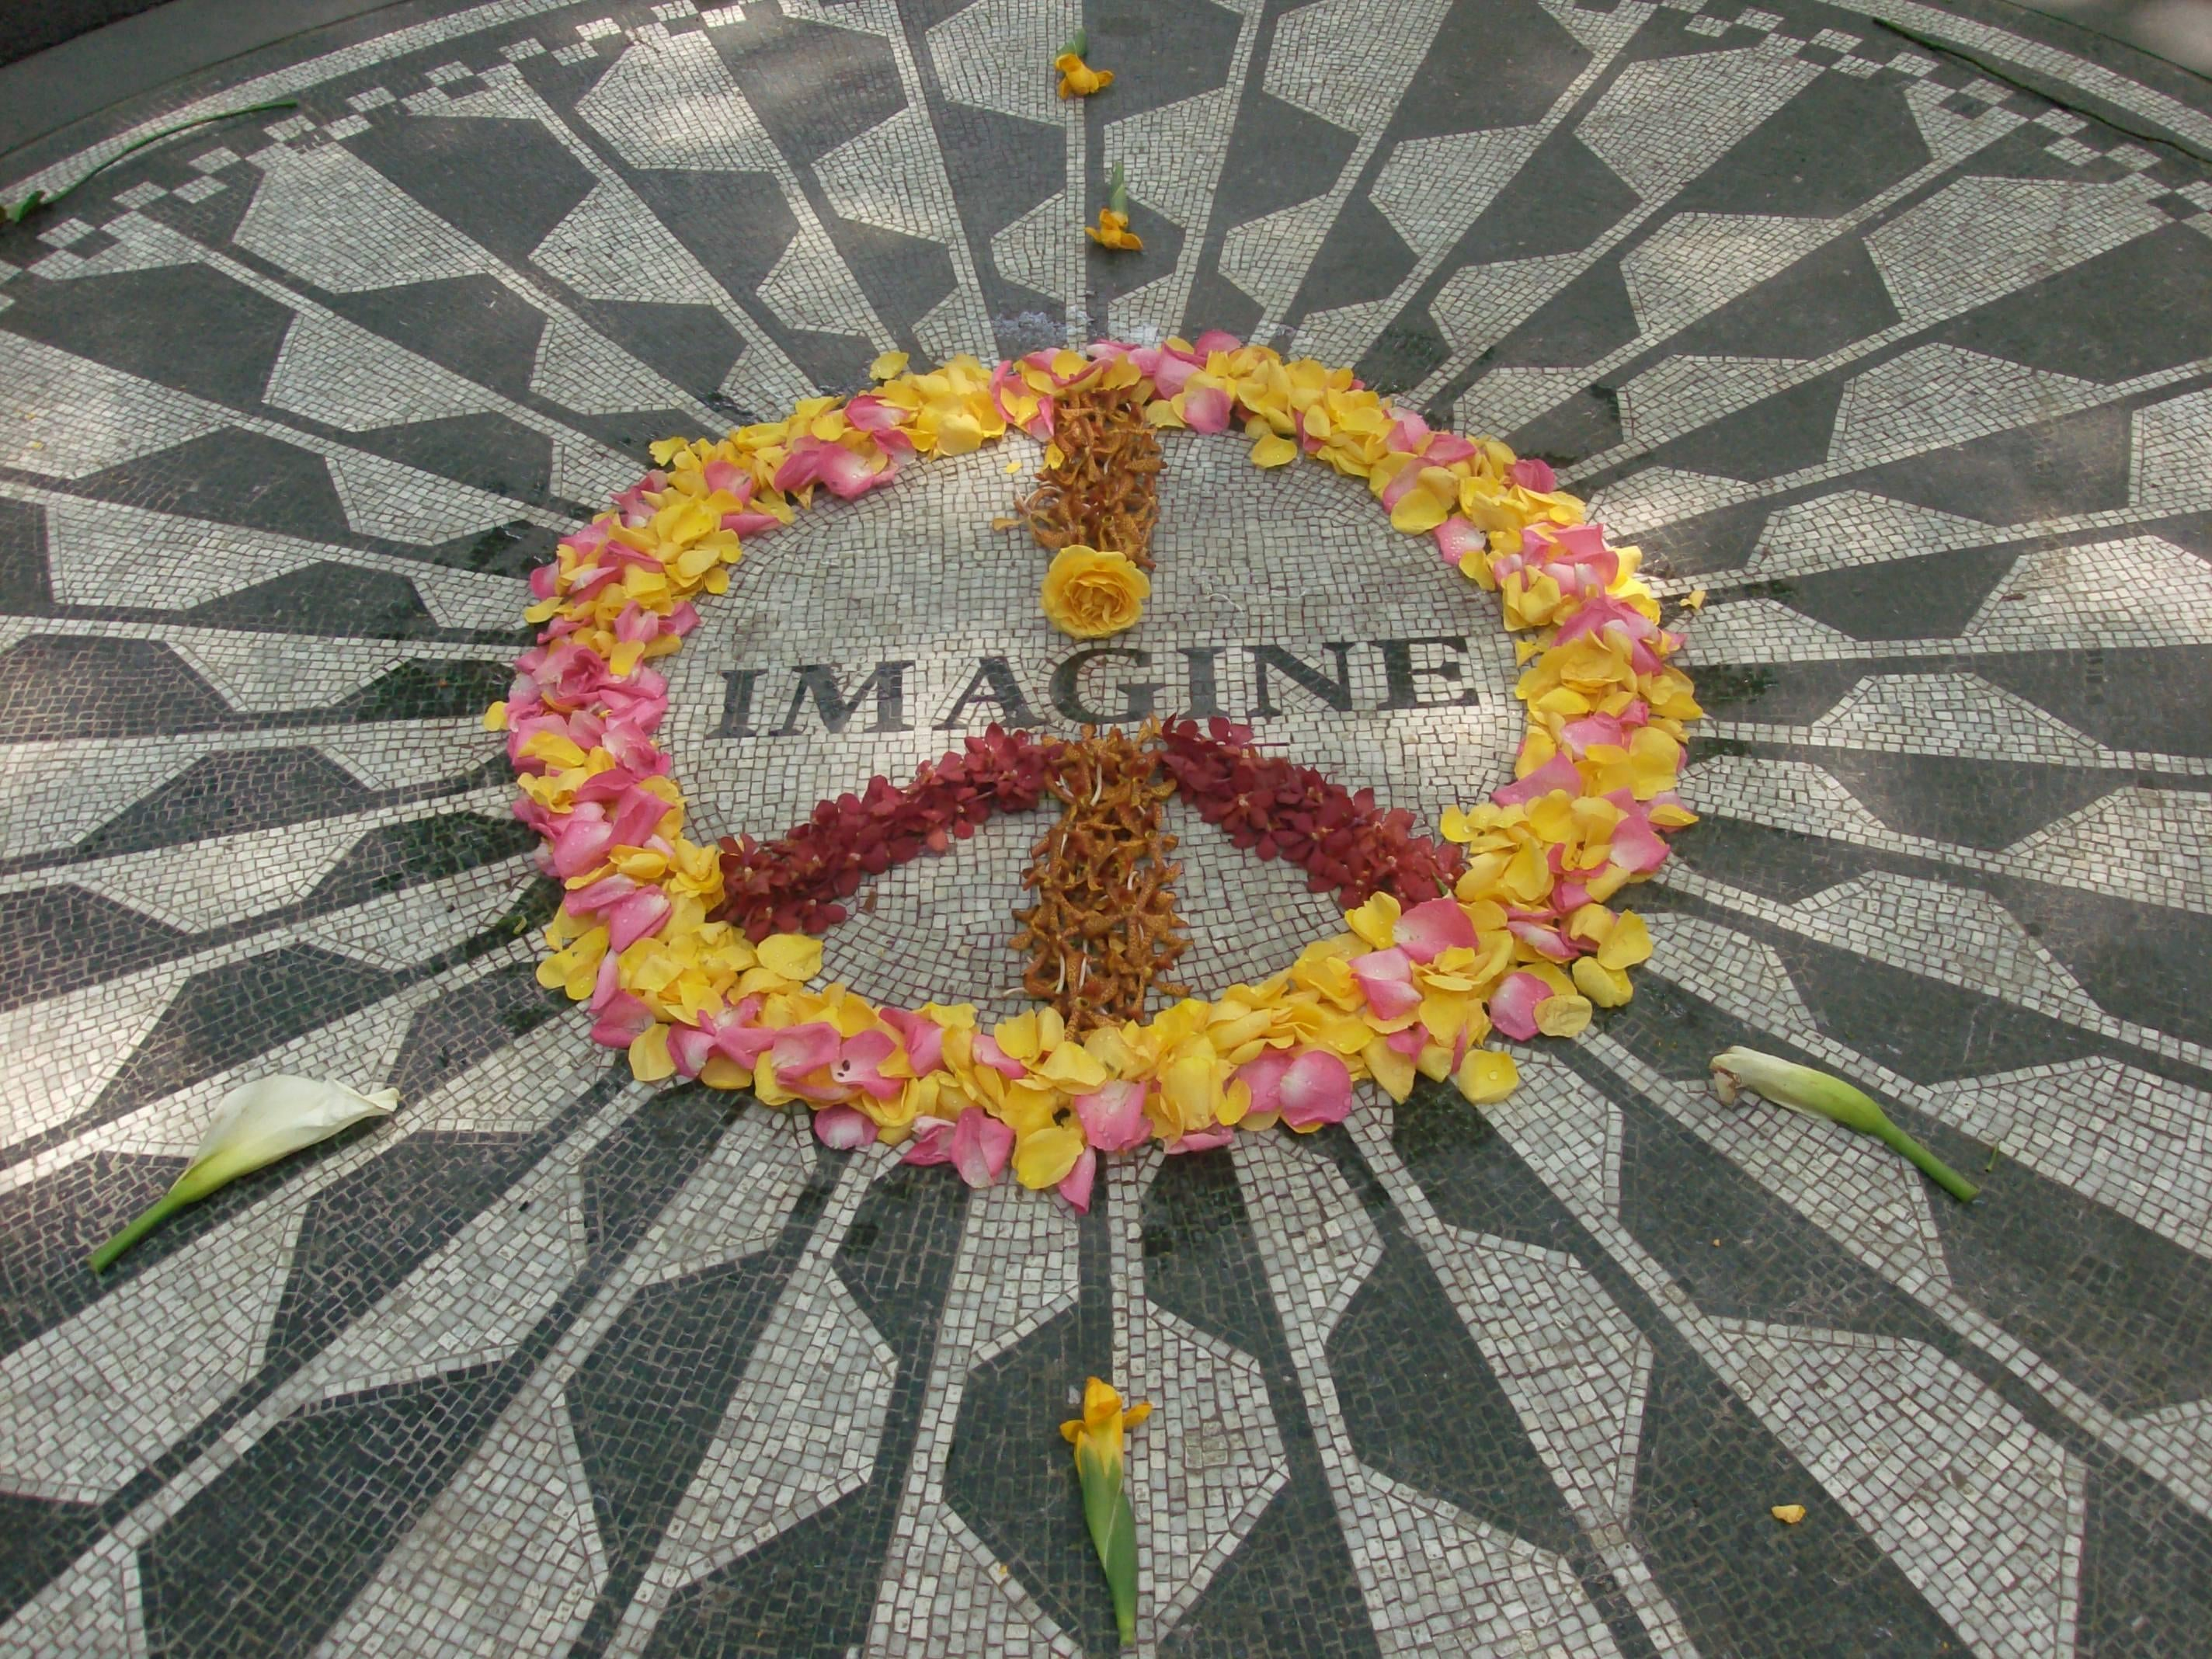 Flor en Strawberry Fields - monumento a John Lennon